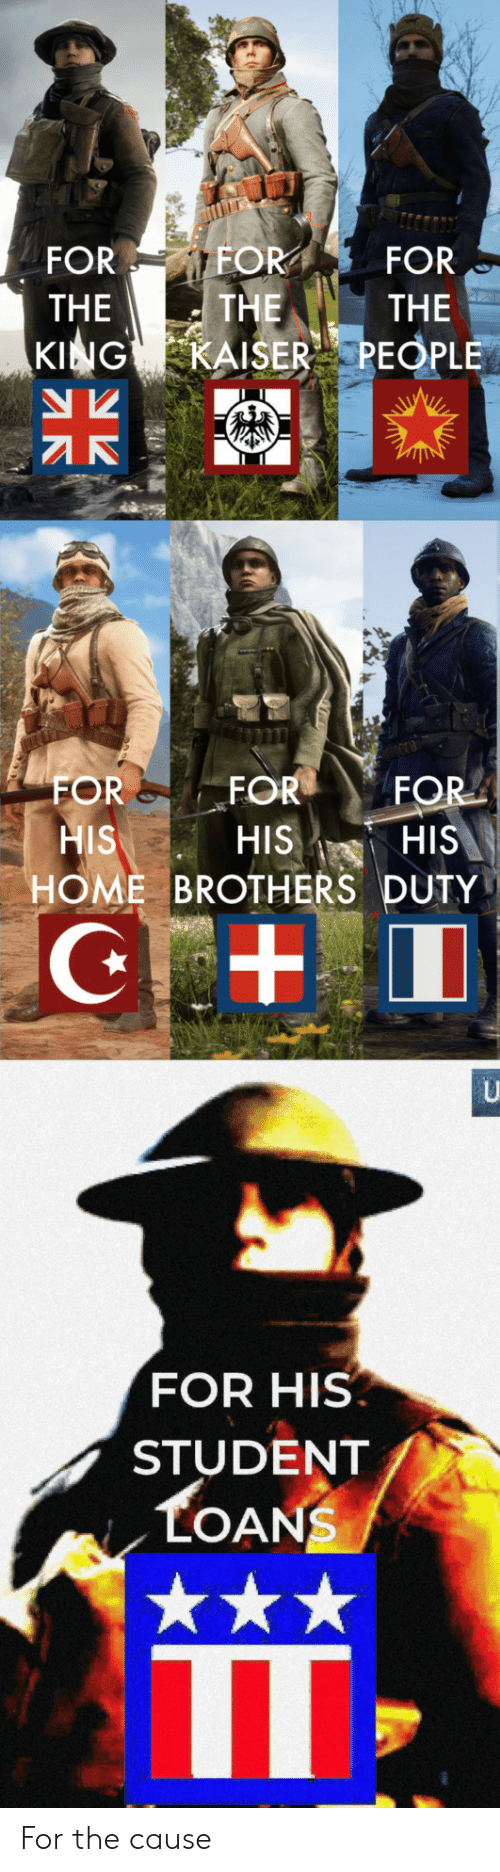 Home, Kaiser, and Loans: FOR  FOR  FOR  THE  THE  THE  KING  KAISER PEOPLE  FOR  FOR  FOR  HIS  HOME BROTHERS DUTY  HIS  HIS  U  FOR HIS  STUDENT  LOANS For the cause